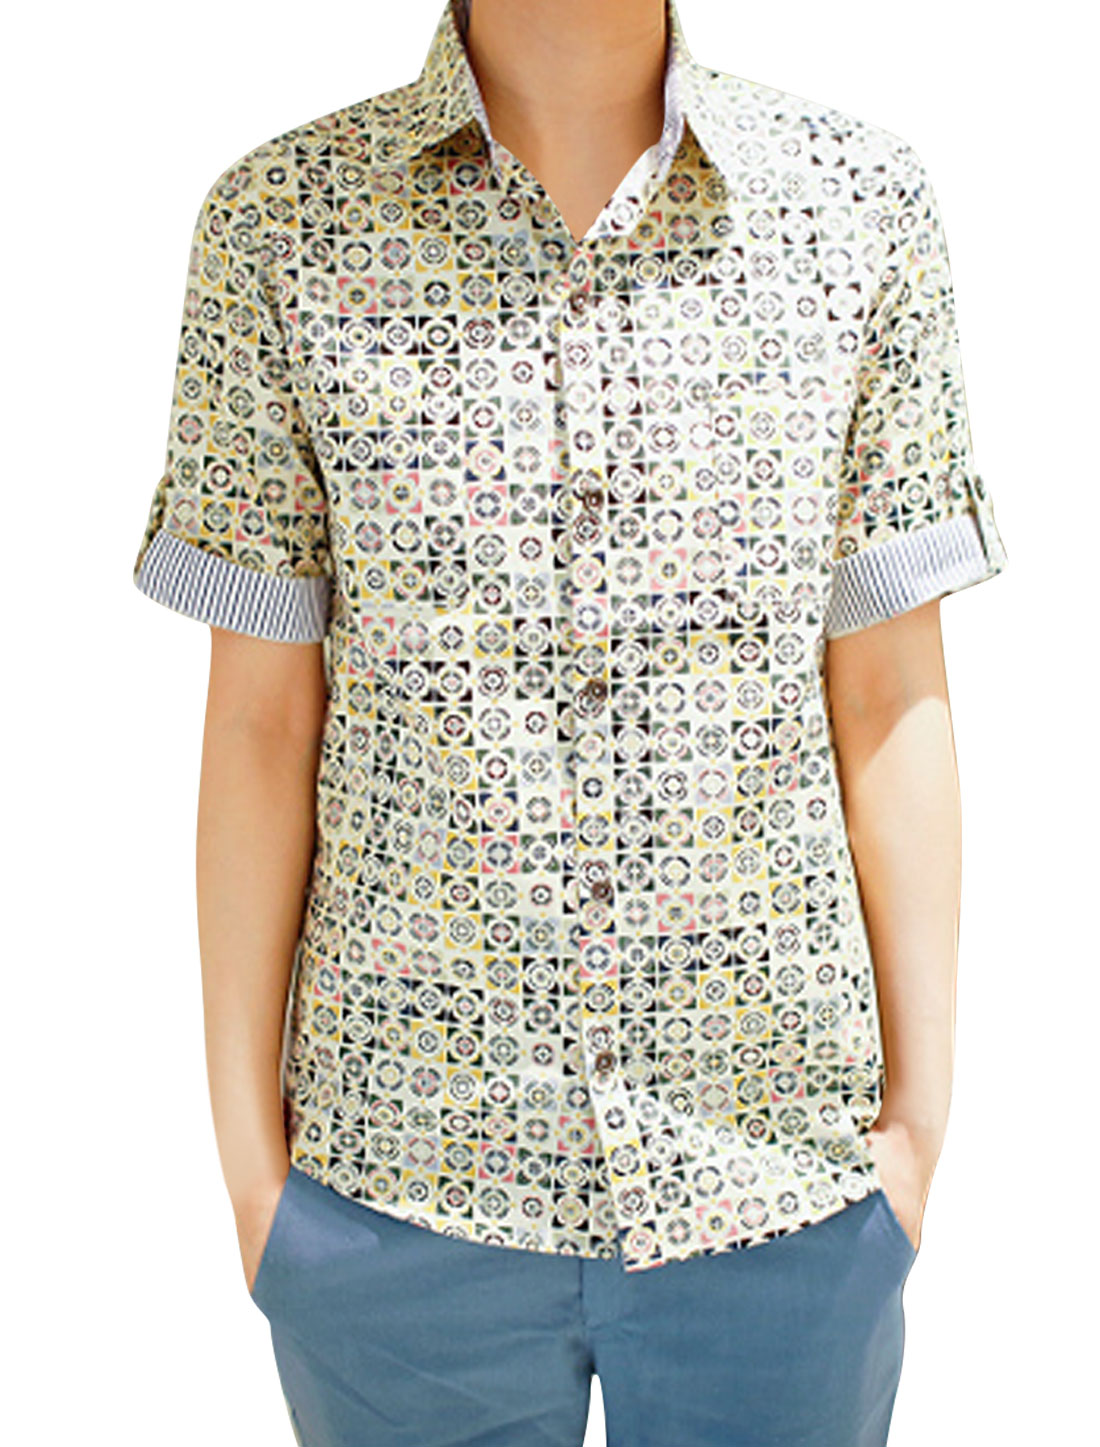 Men Multi-Color Piont Collar Circles Patten Chest Pocket Shirt M